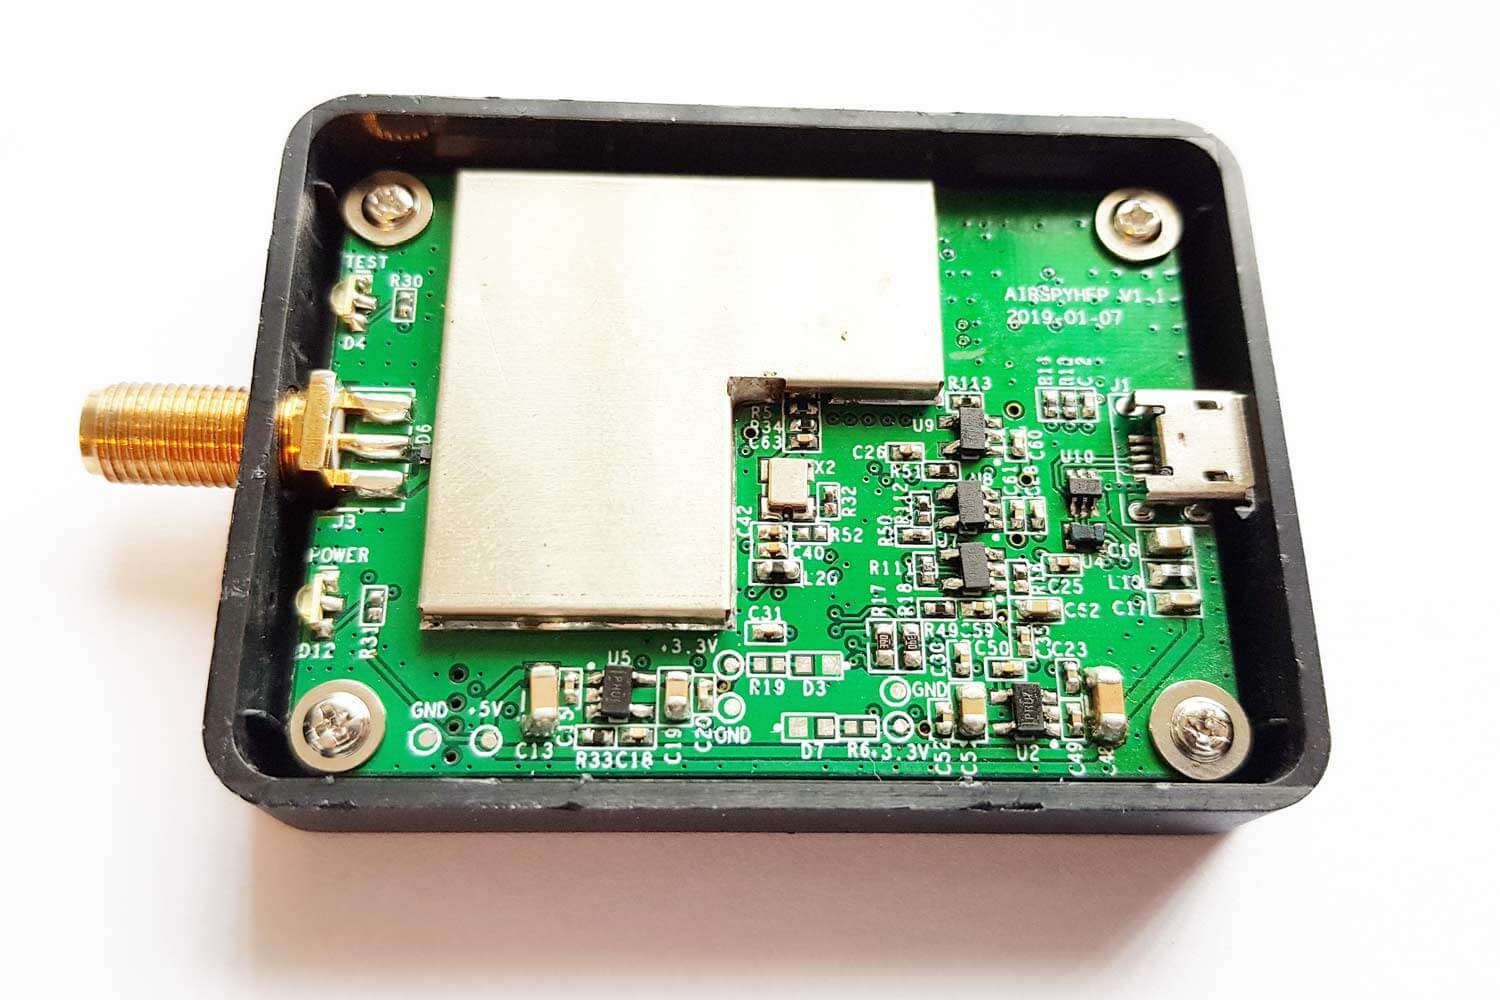 Airspy HF+ Discovery Now Available for Preorder + Brief